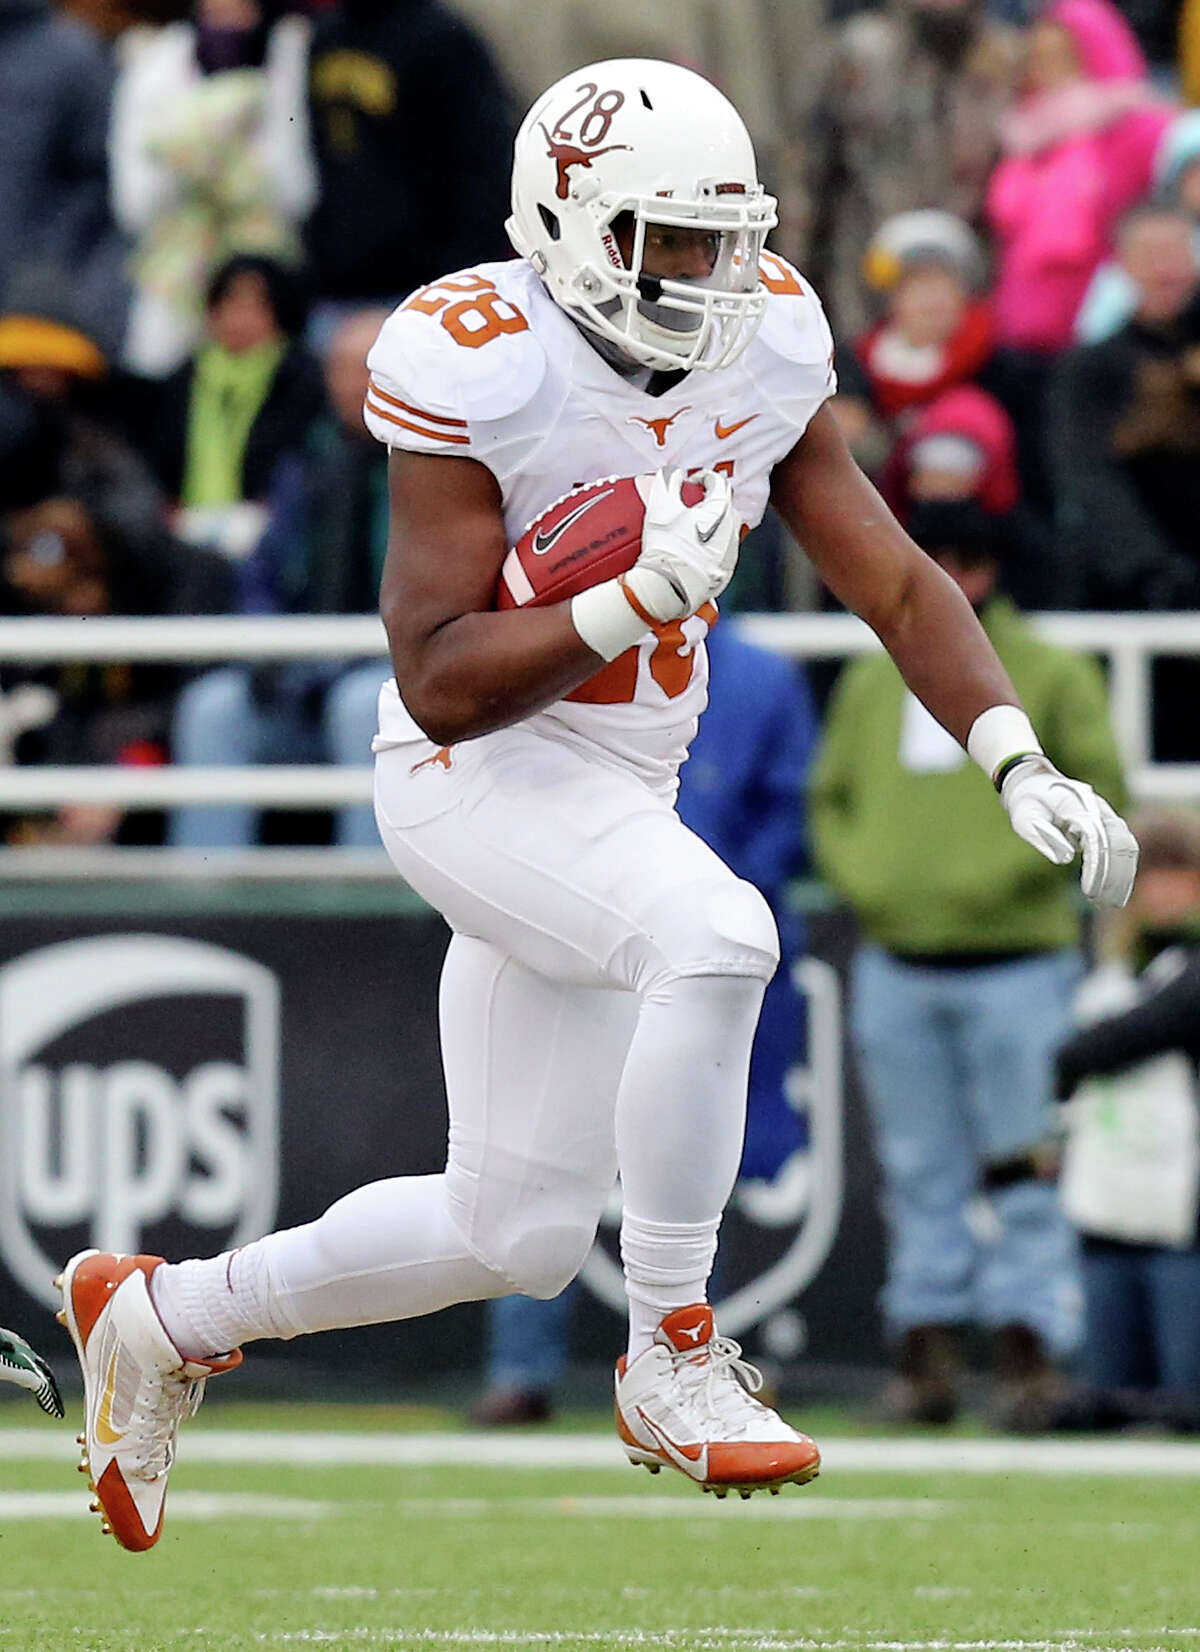 Texas Longhorns running back Malcolm Brown heads up field against the Baylor Bears during first half action Saturday Dec. 7, 2013 at Floyd Casey Stadium in Waco, Tx.